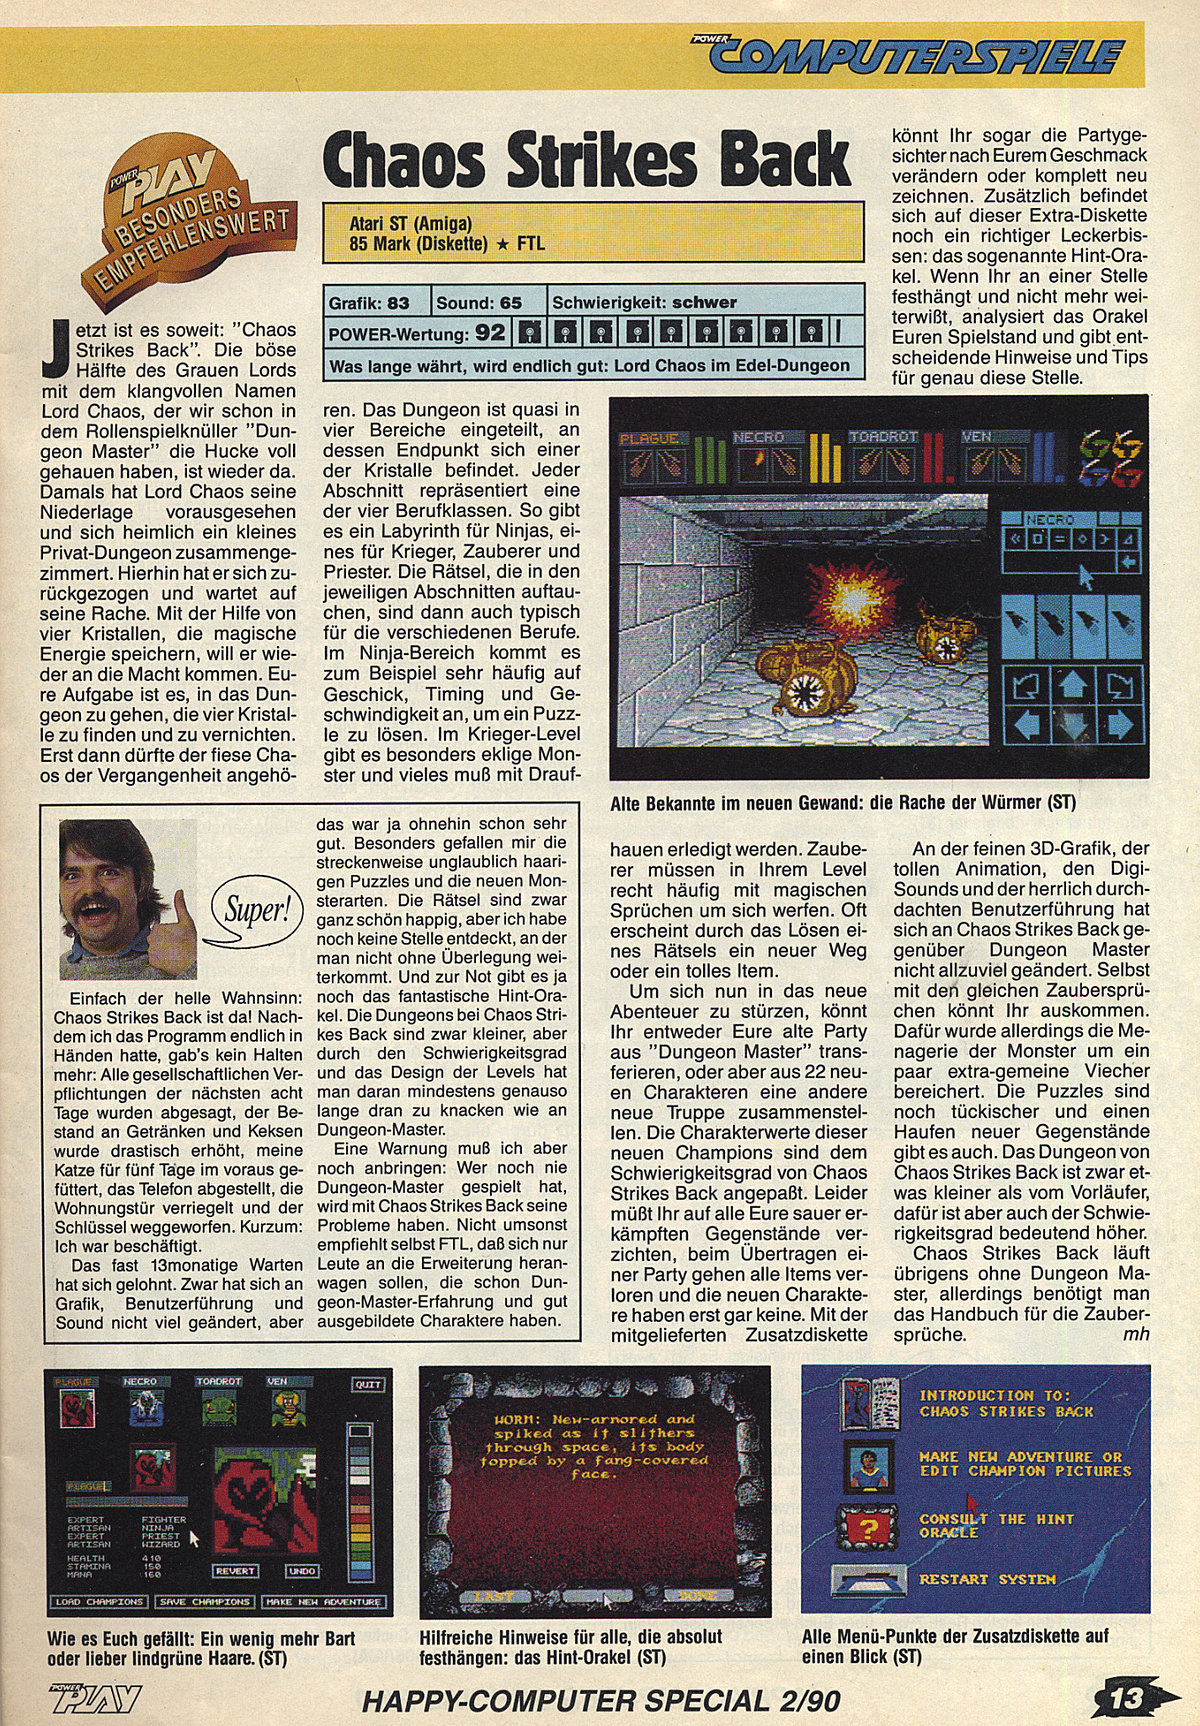 Chaos Strikes Back for Atari ST Review published in German magazine 'Power Play', February 1990, Page 13